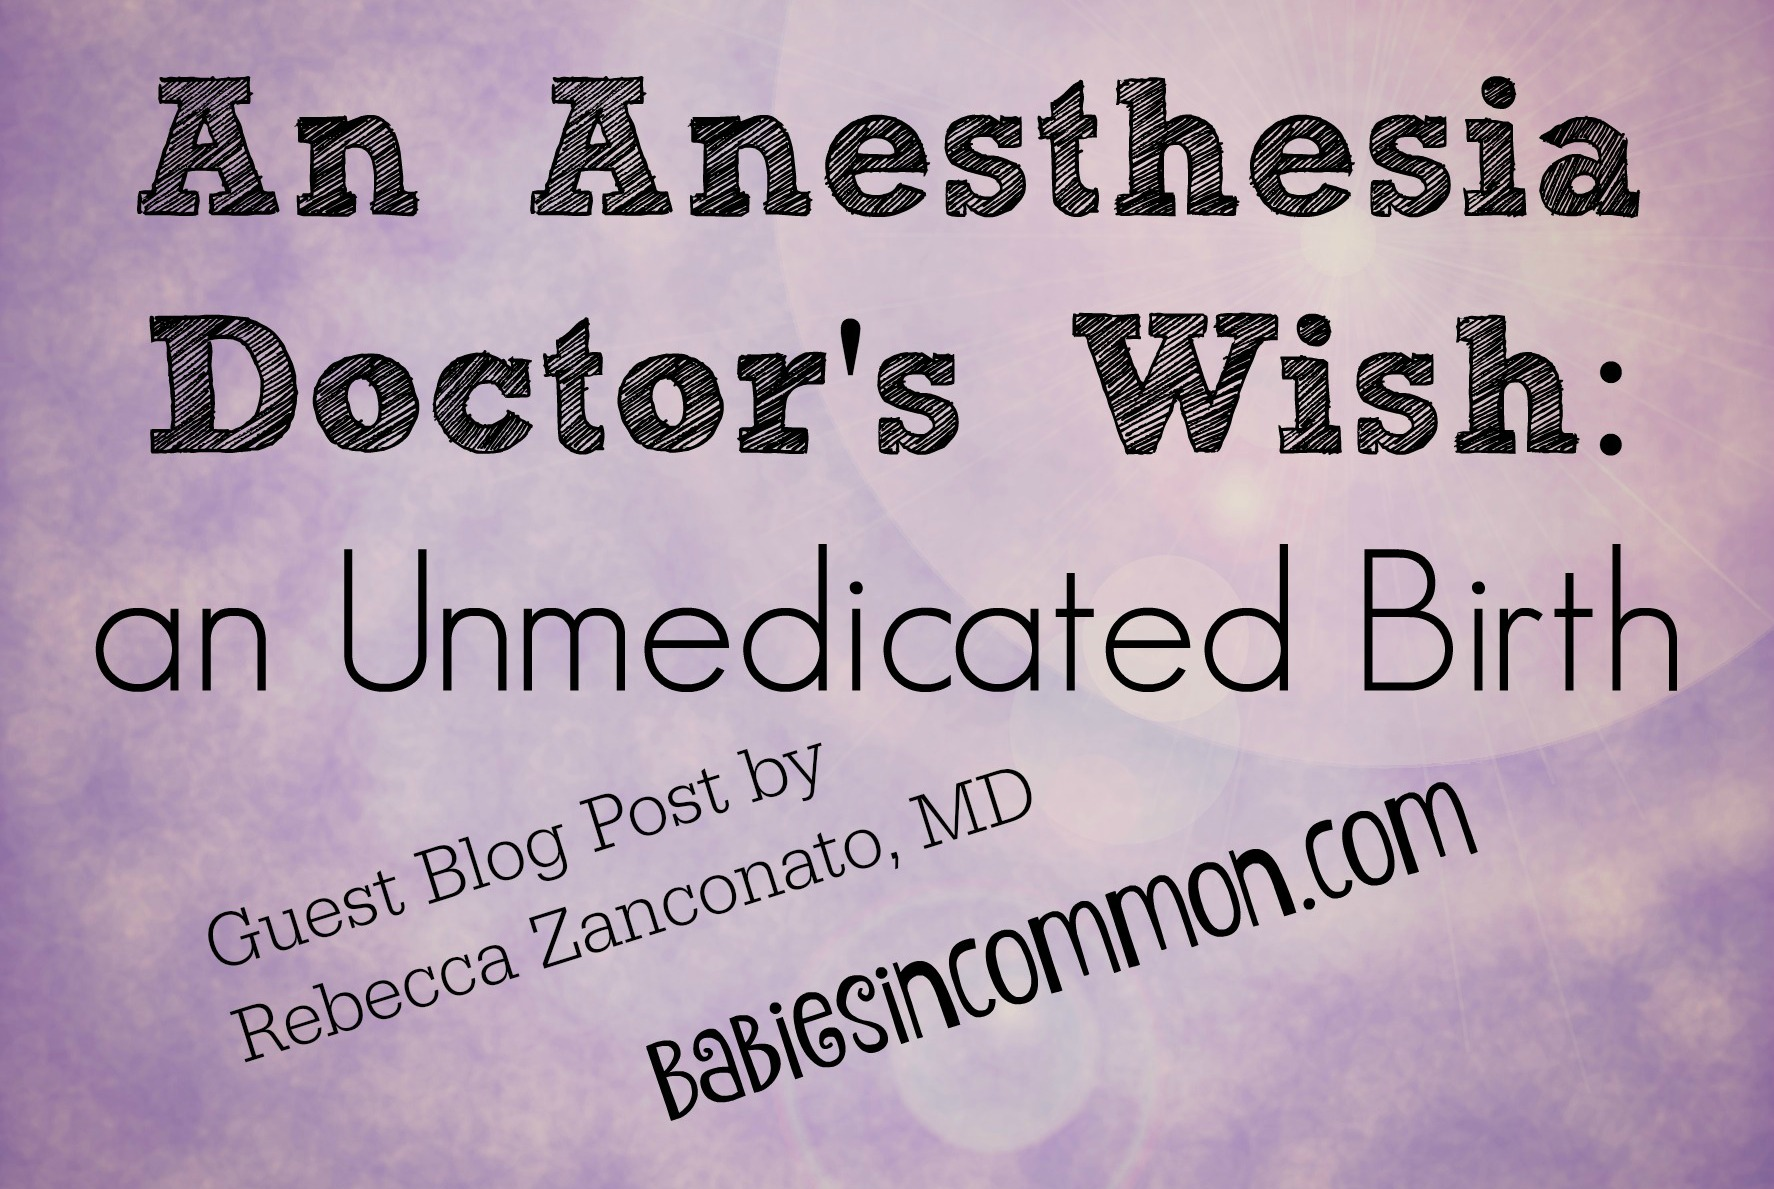 anesthesia doctor's wish title photo